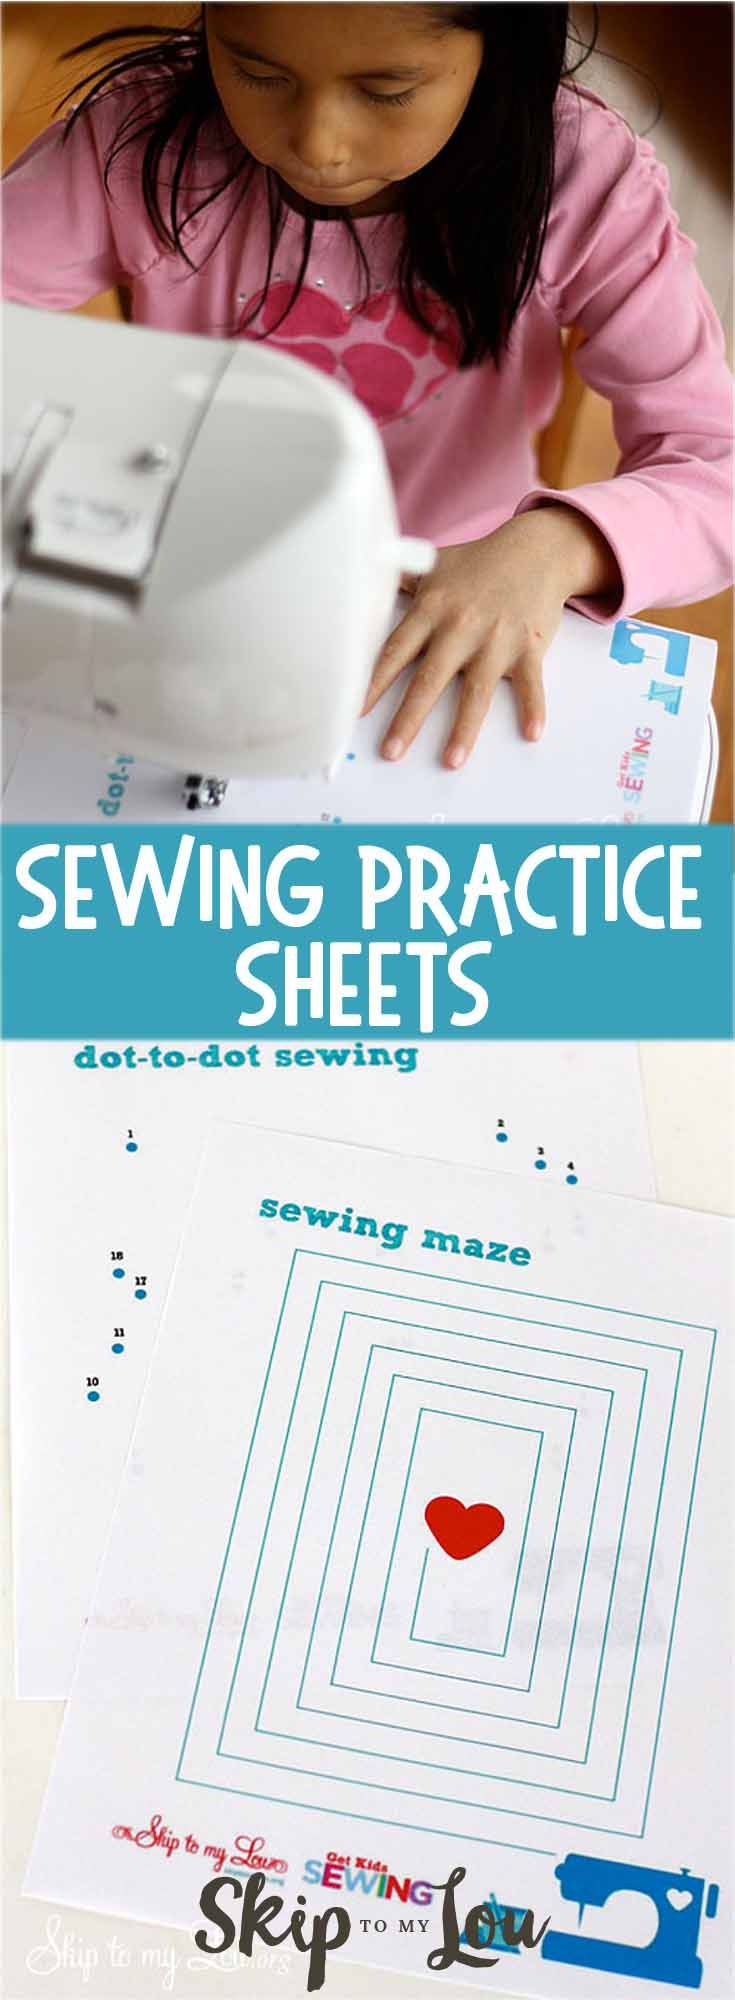 166 best Sewing images on Pinterest | Comforters, Pointe shoes and ...